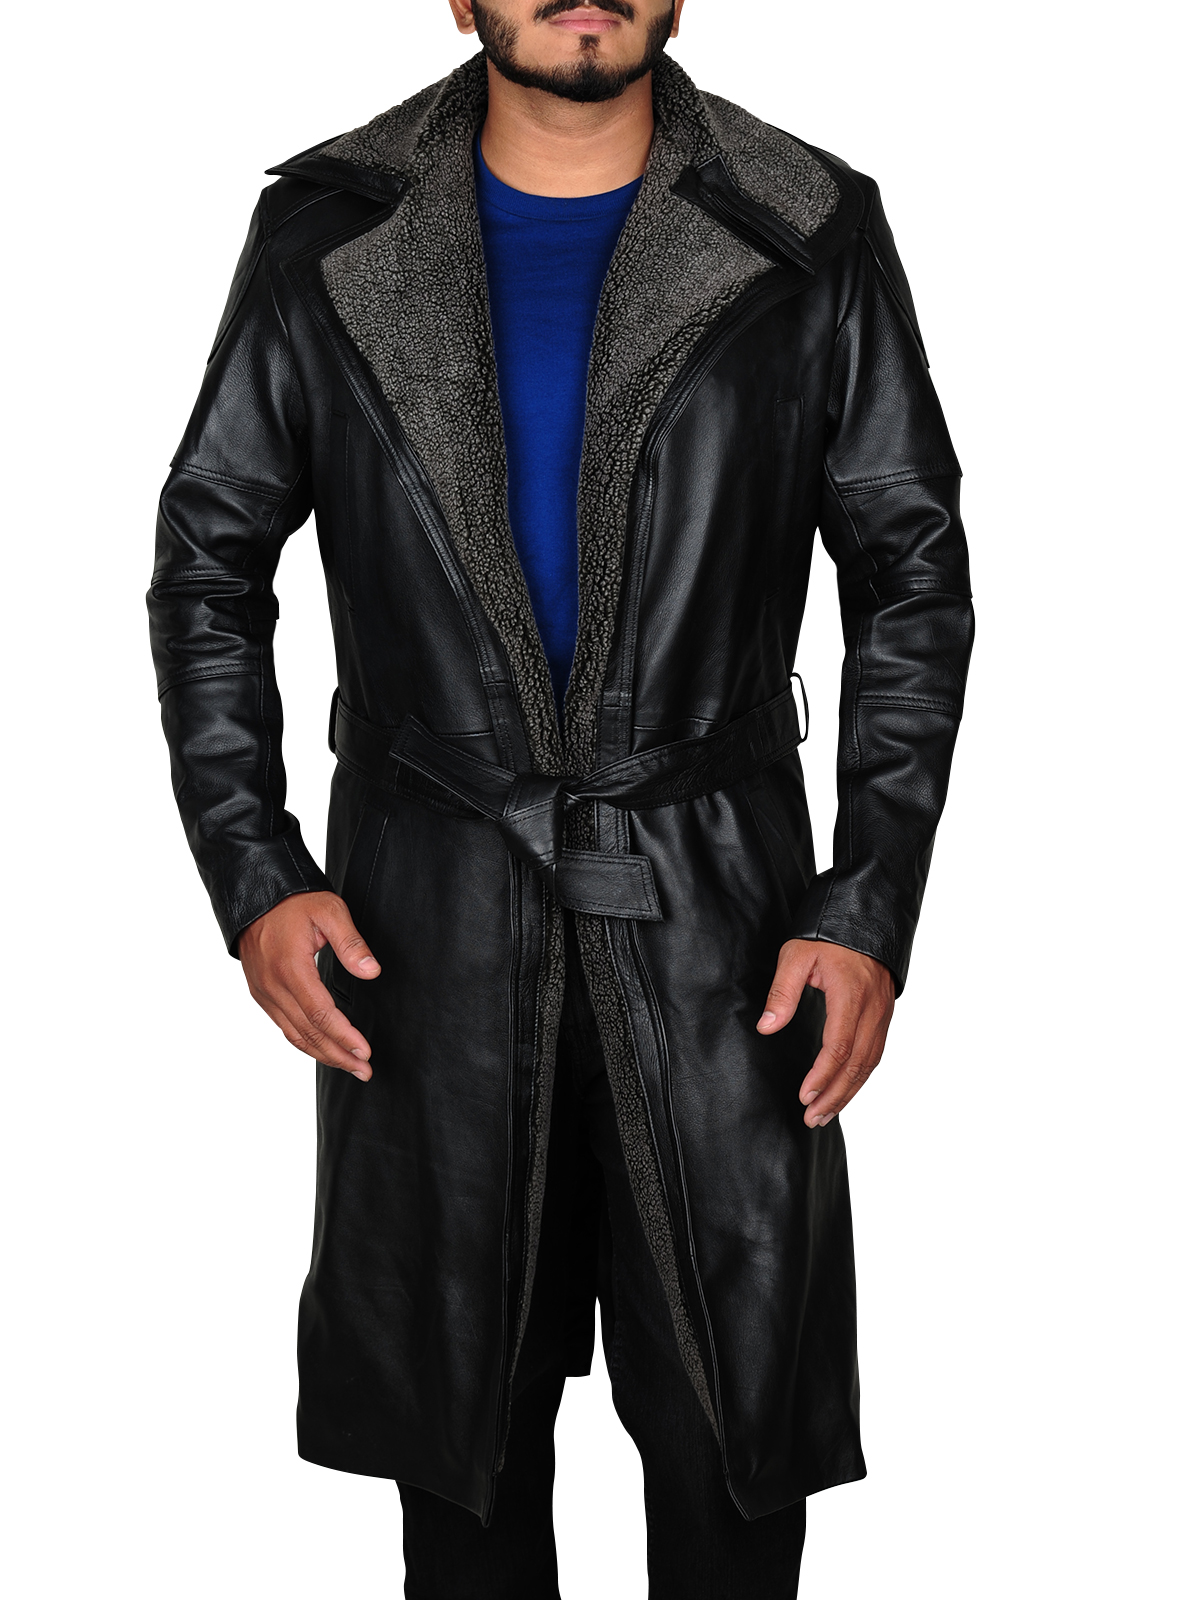 Men's Ryan Gosling Blade Runner 2049 Black Coat